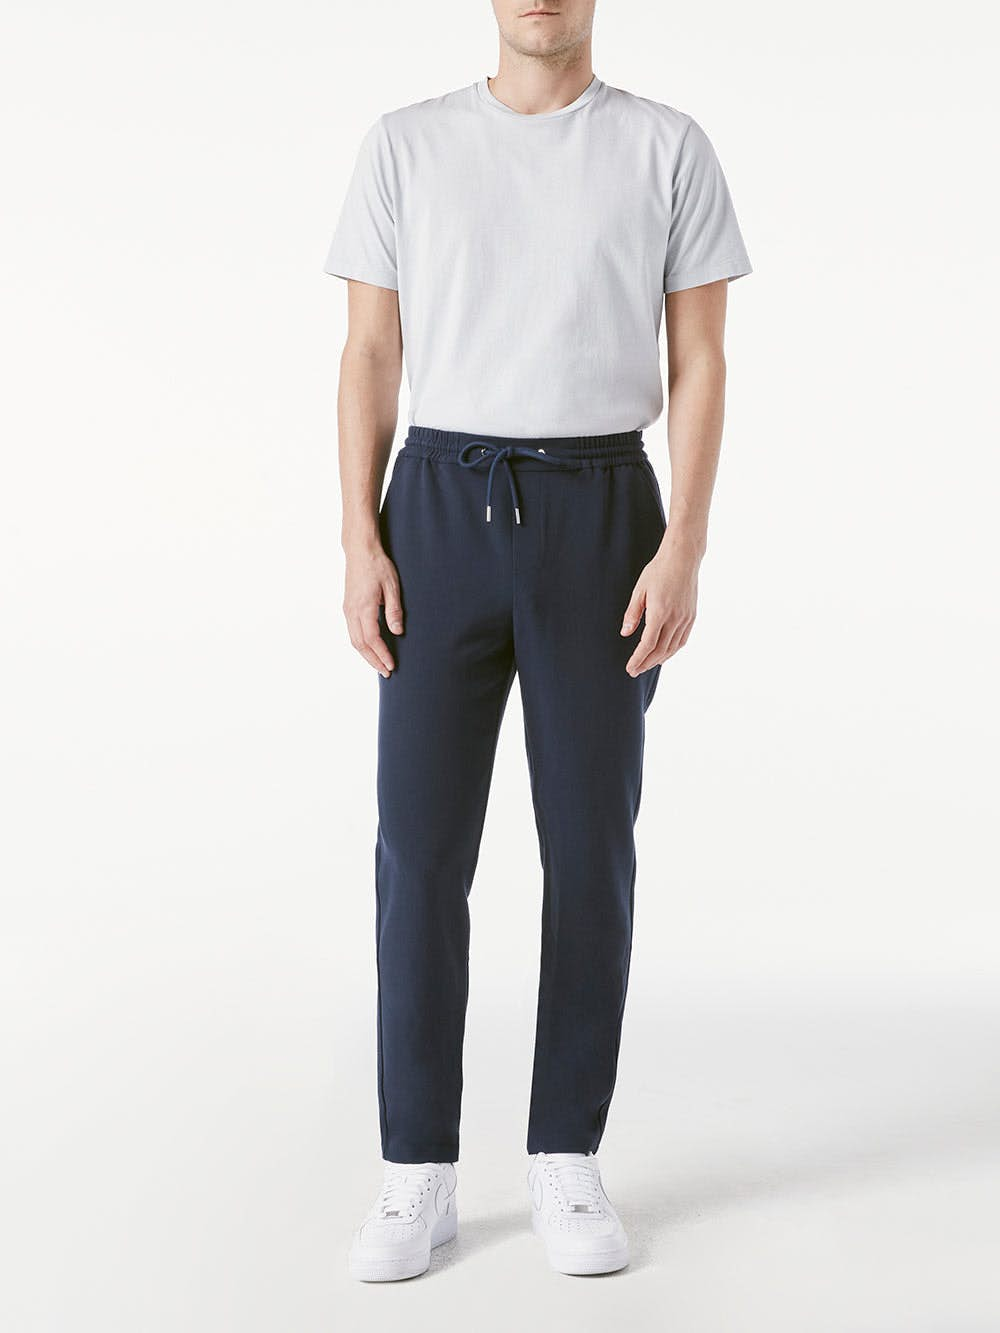 pant front full body view alt:hover